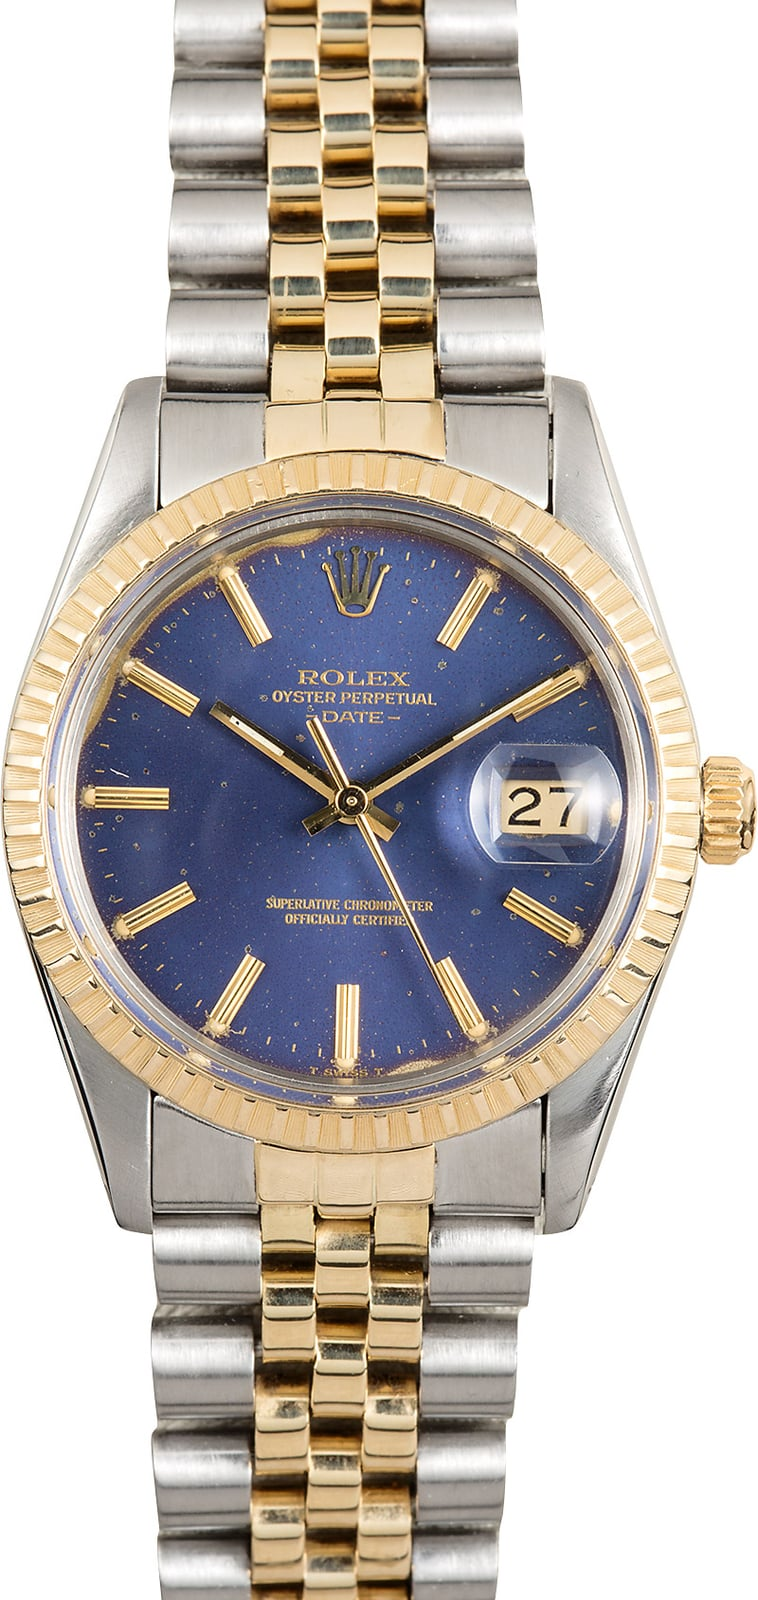 Rolex sea dweller celebrity plastic surgery